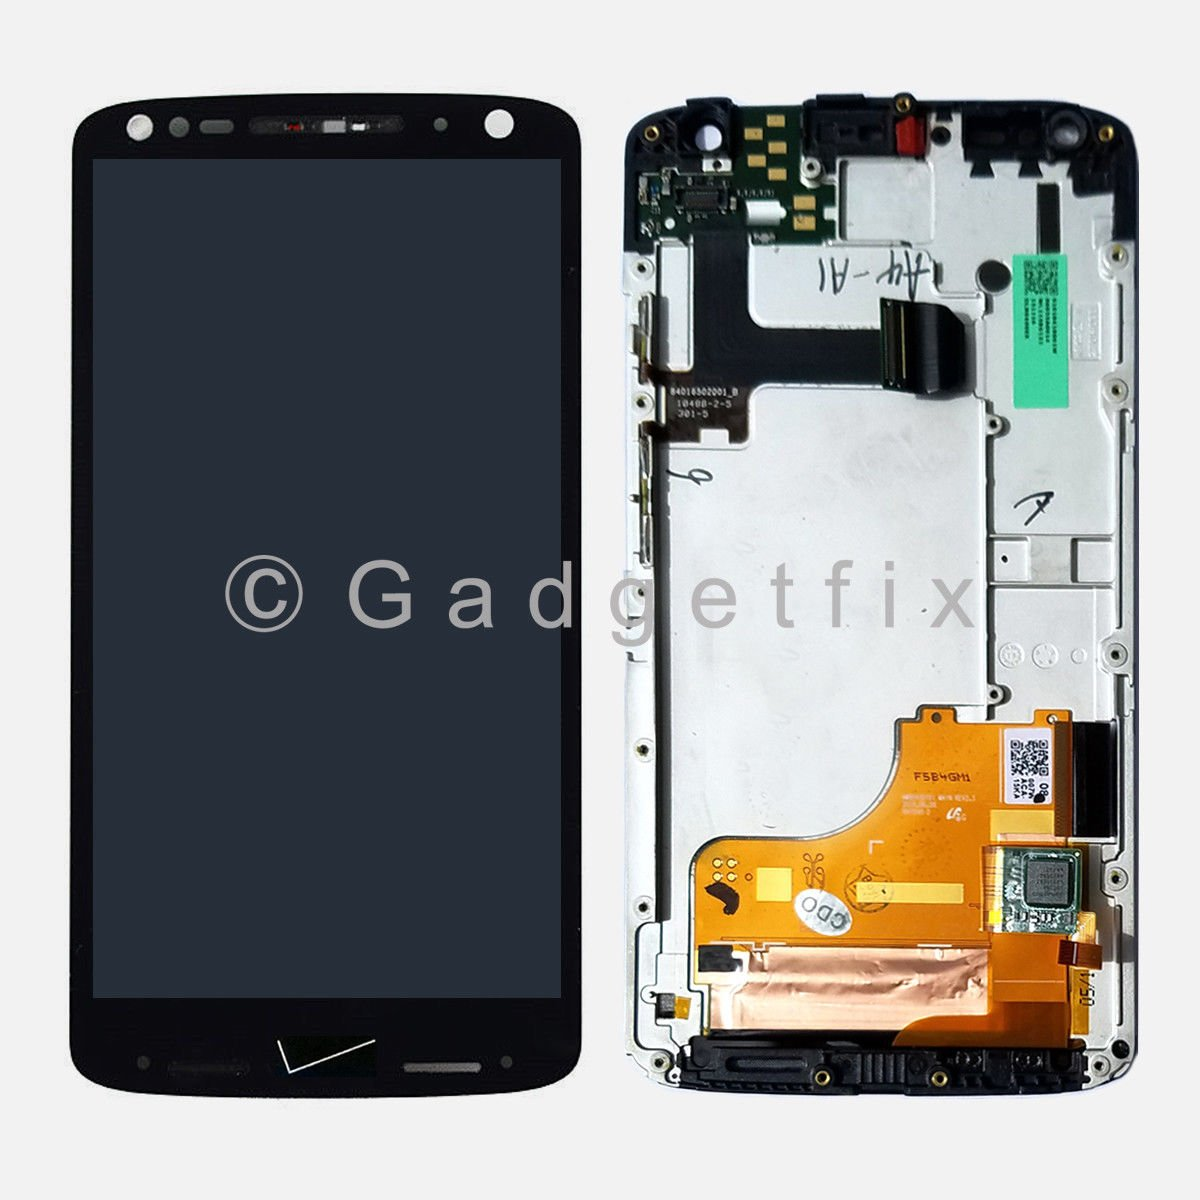 Rousing Verizon Motorola Droid Turbo Lcd Display Touch Screen Digitizer Verizon Motorola Droid Turbo Lcd Display Touch Screen Oneplus 3t Verizon Wireless Oneplus 3t On Verizon Network dpreview Oneplus 3t Verizon